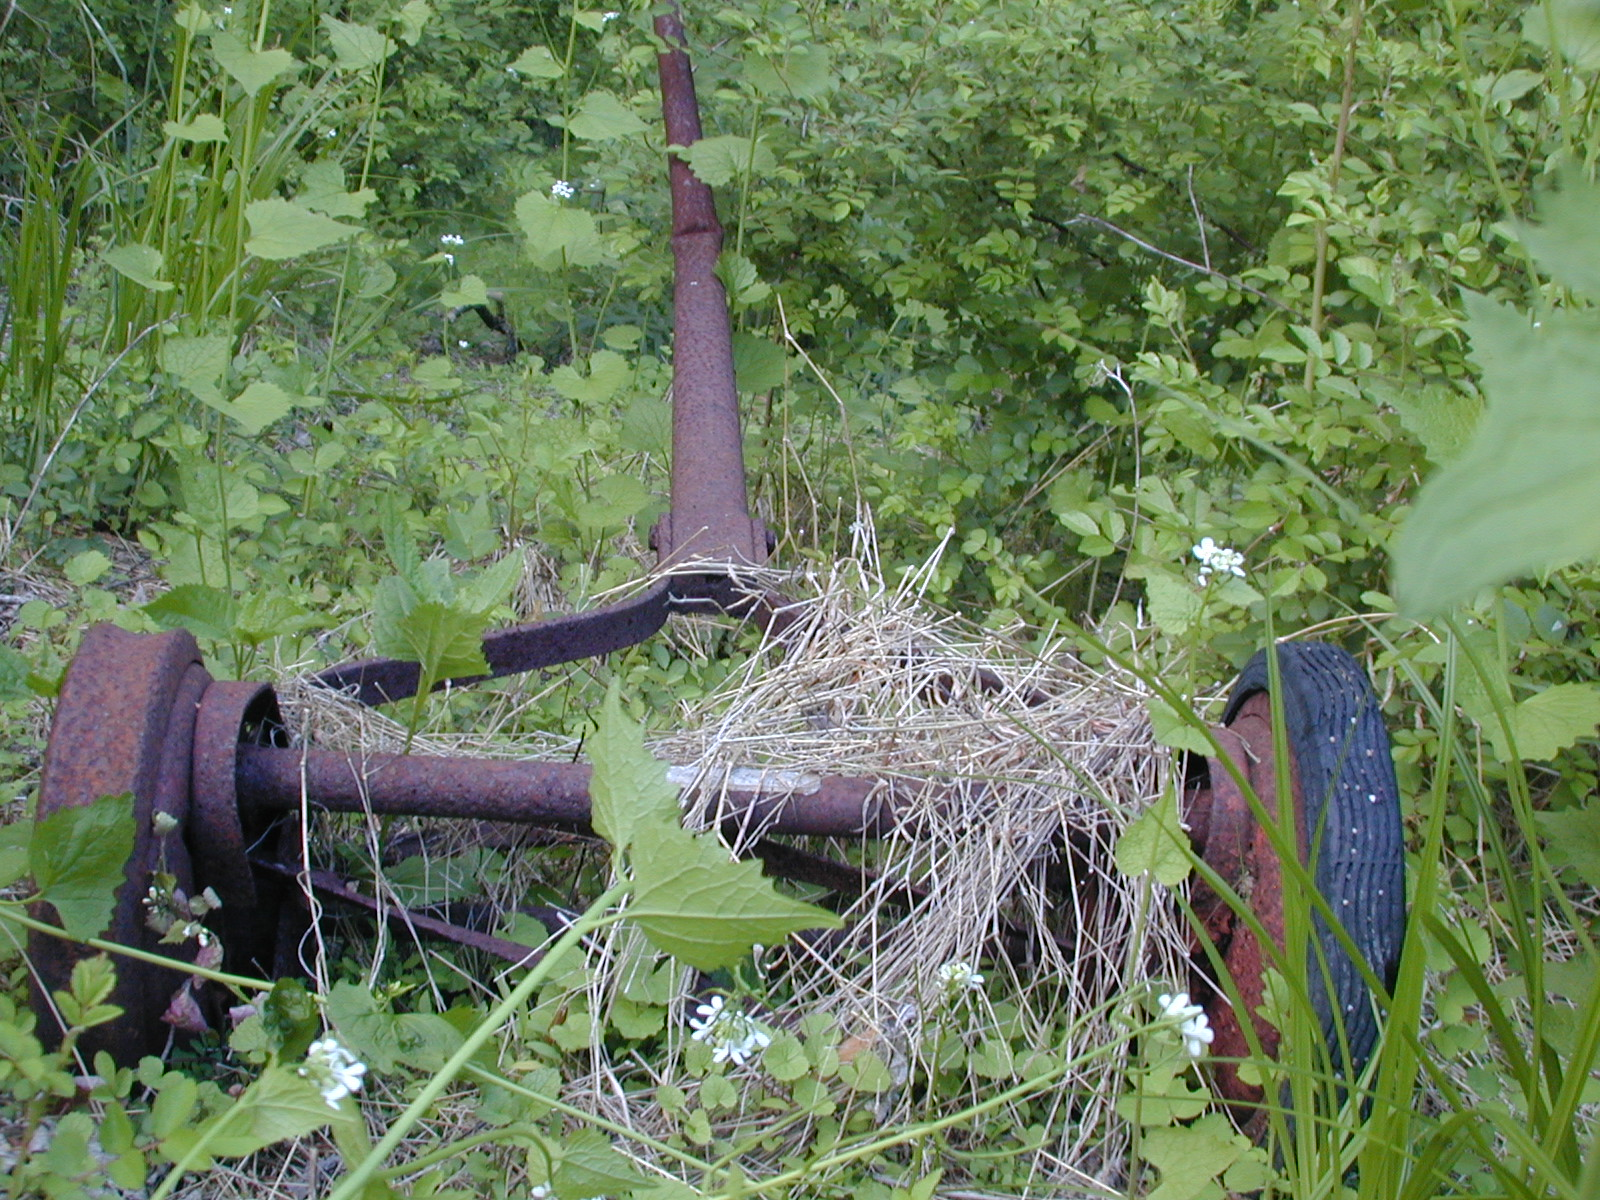 Mower in the yard of the Depue farmhouse